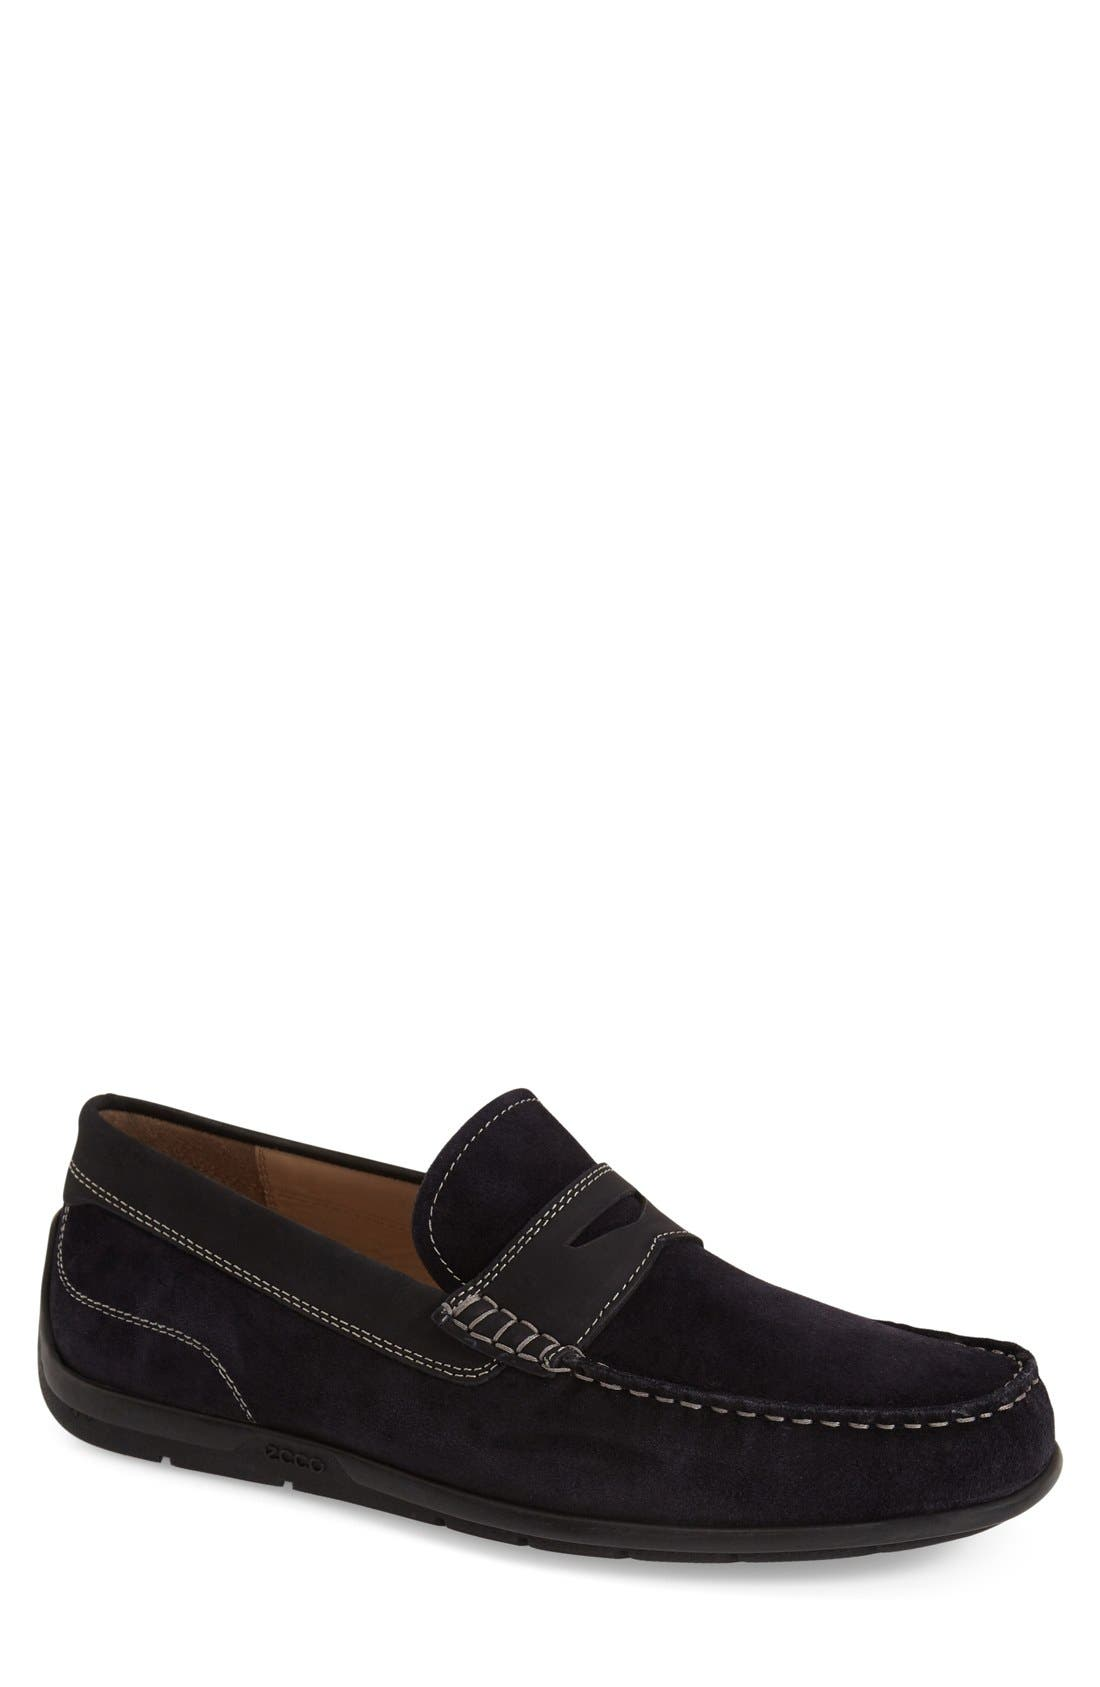 'Classic Moc 2.0' Penny Loafer,                             Main thumbnail 4, color,